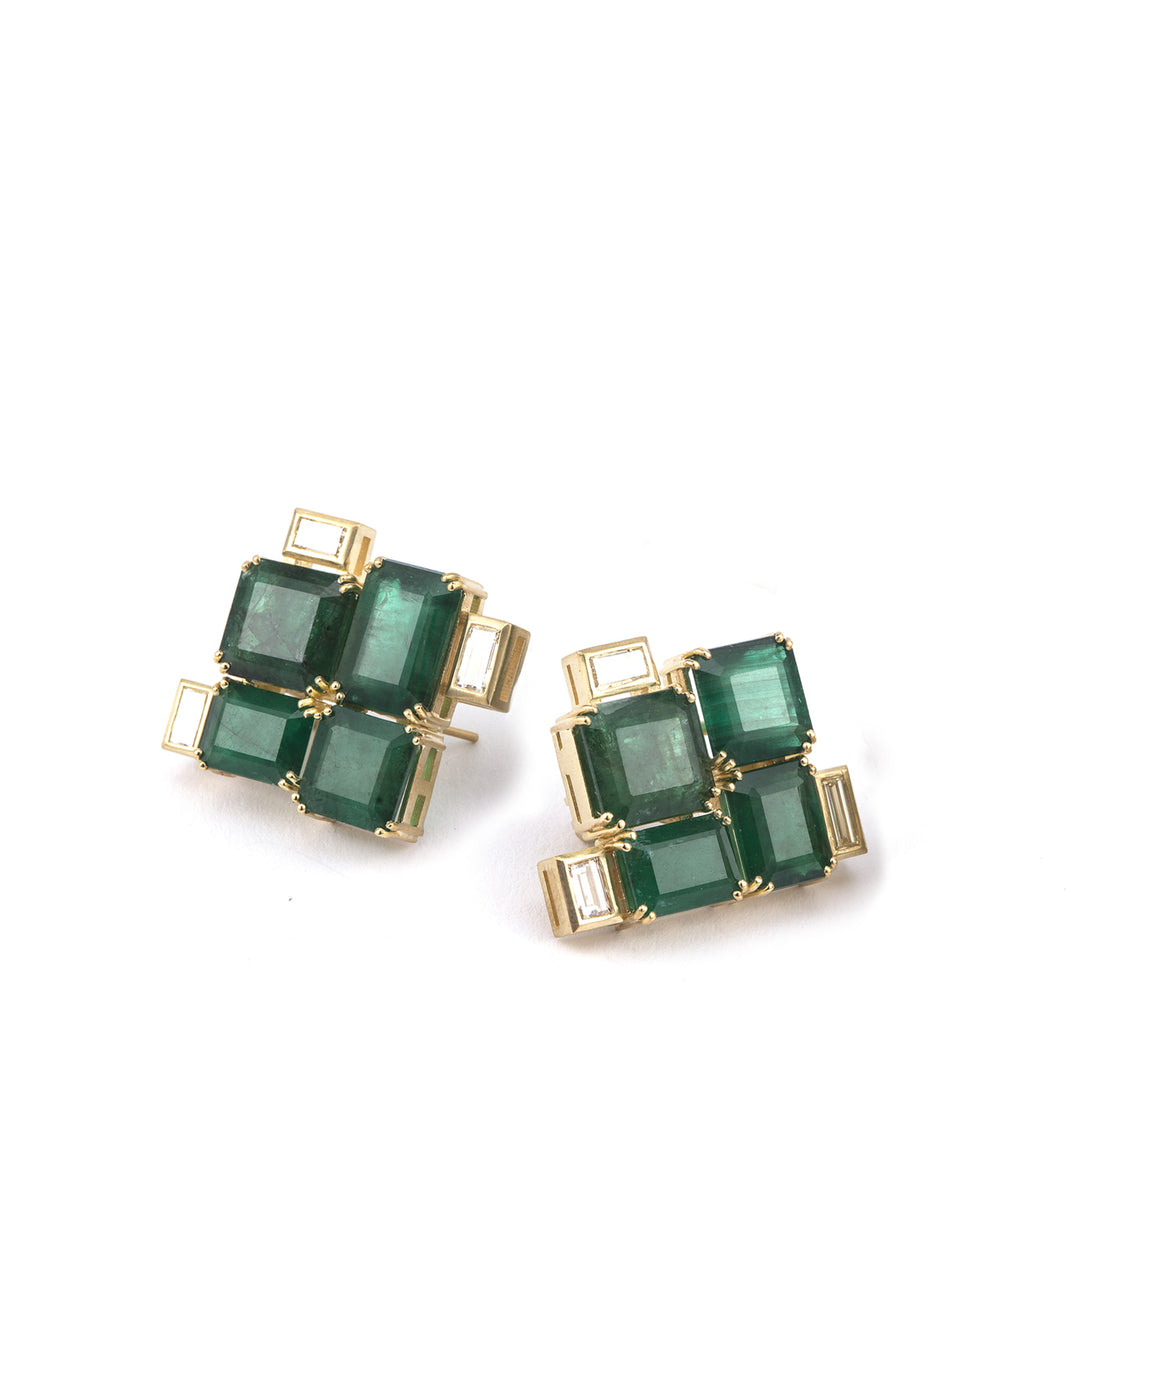 Brazilian emerald button earrings